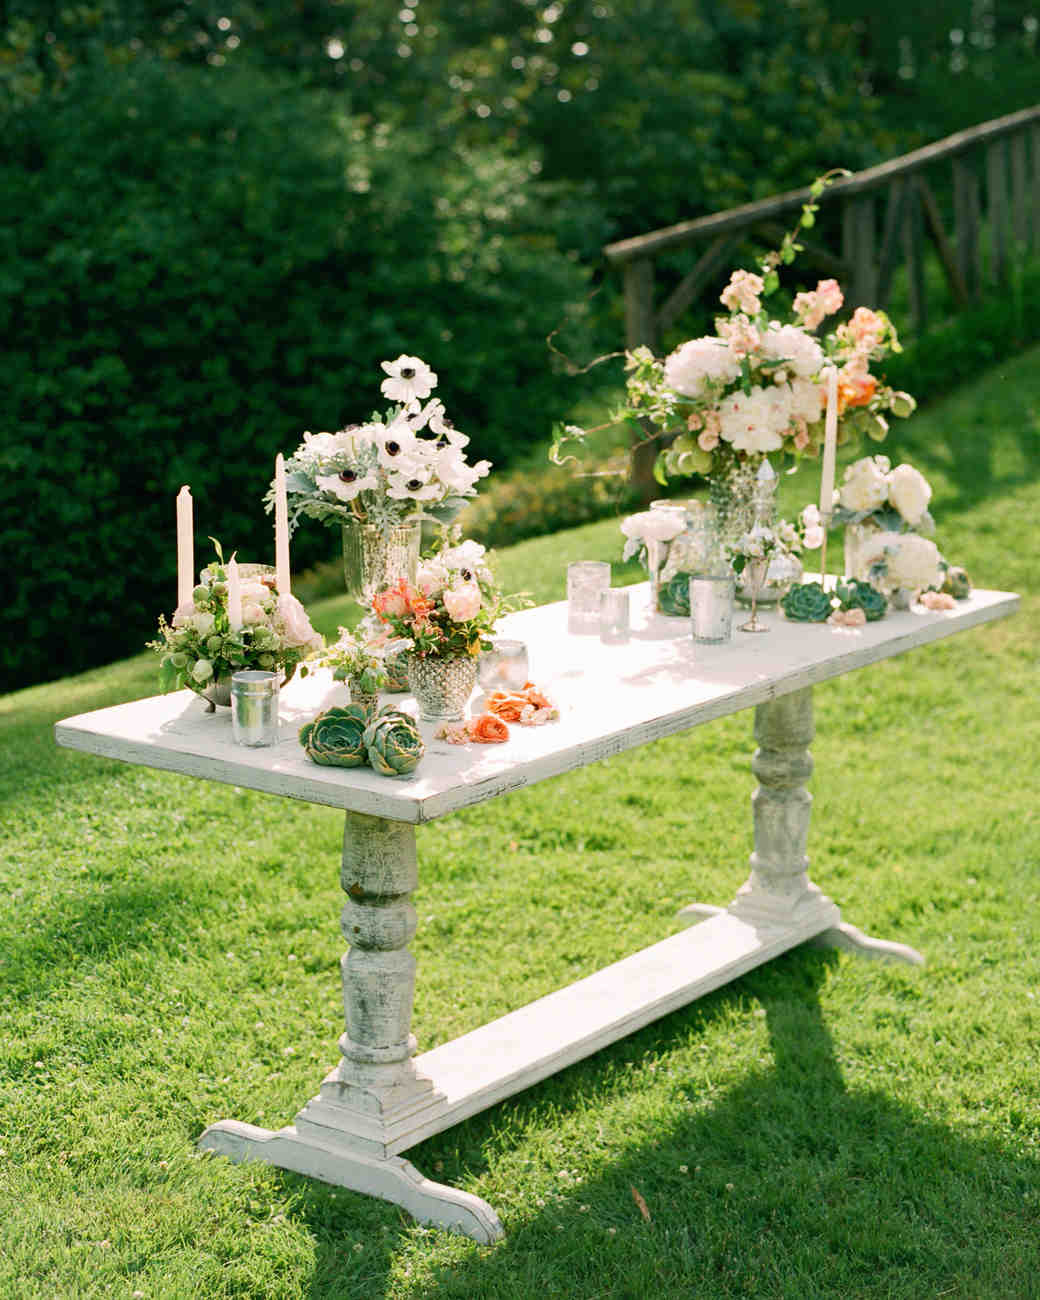 Wedding Altar Decorations For Outside: A Vintage, Formal Outdoor Wedding In Virginia